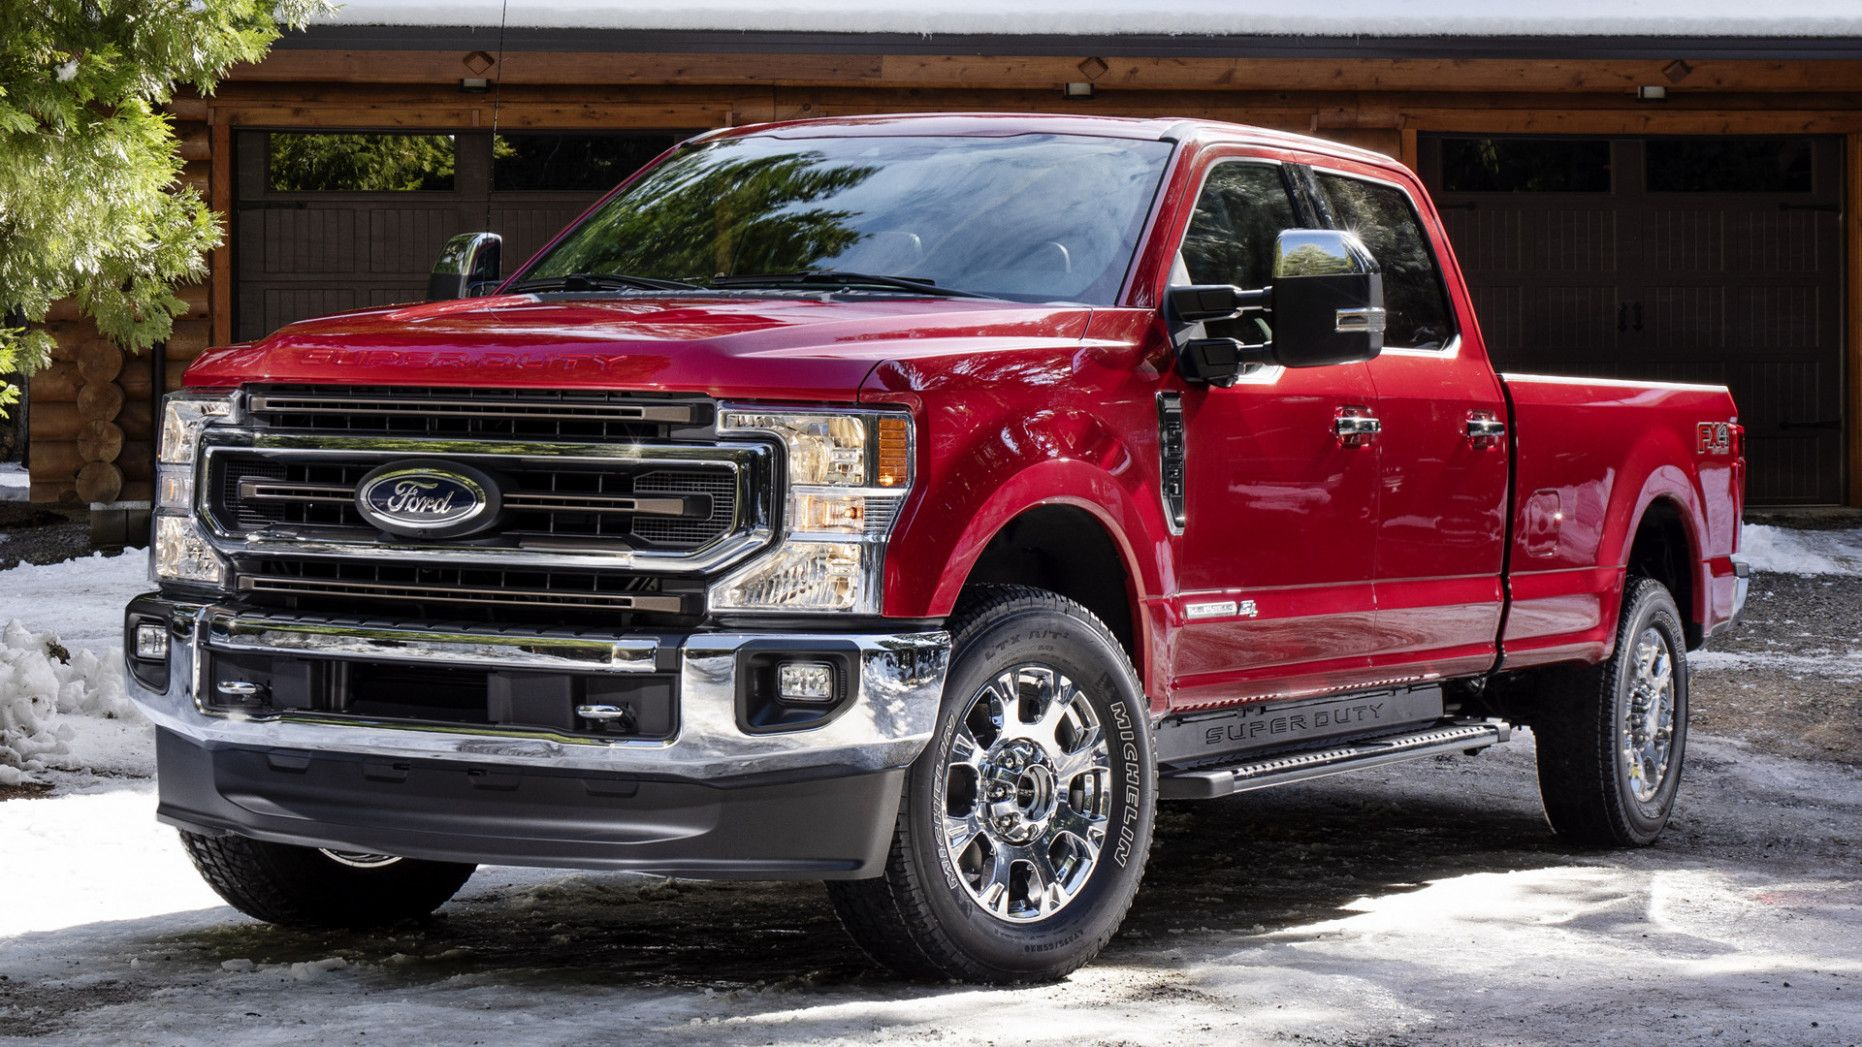 2020 Ford F250 Photographs 2020 Ford F250 Images 2020 Ford F250